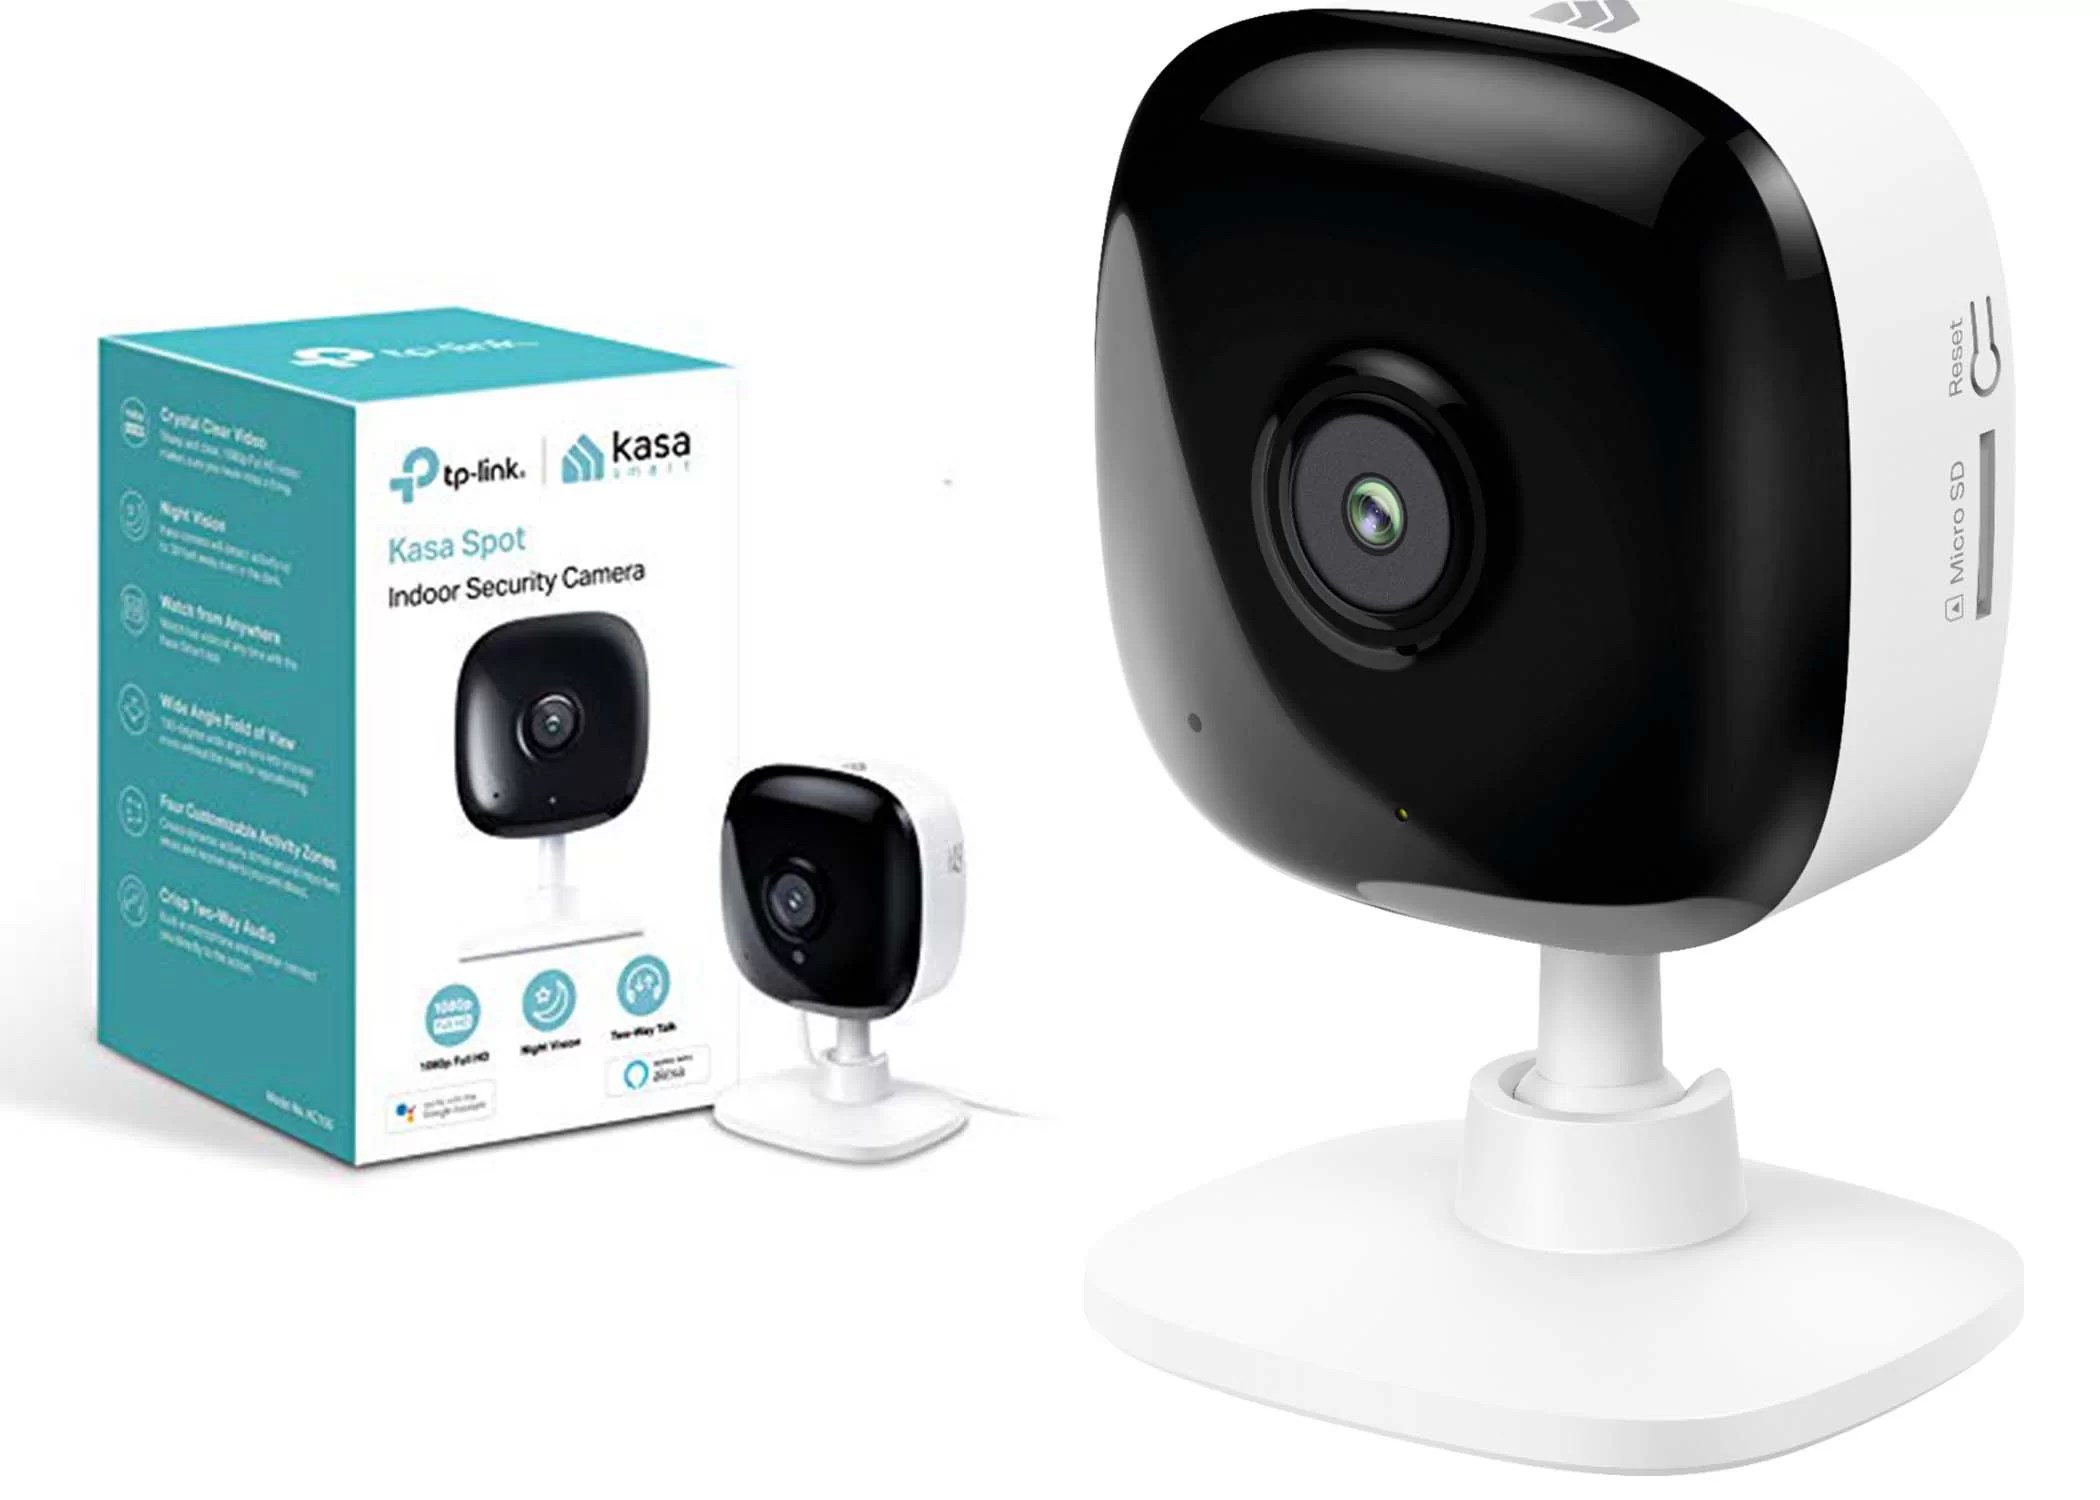 10 Ways Kasa Spot Smart Security Camera Makes Your Home Secure